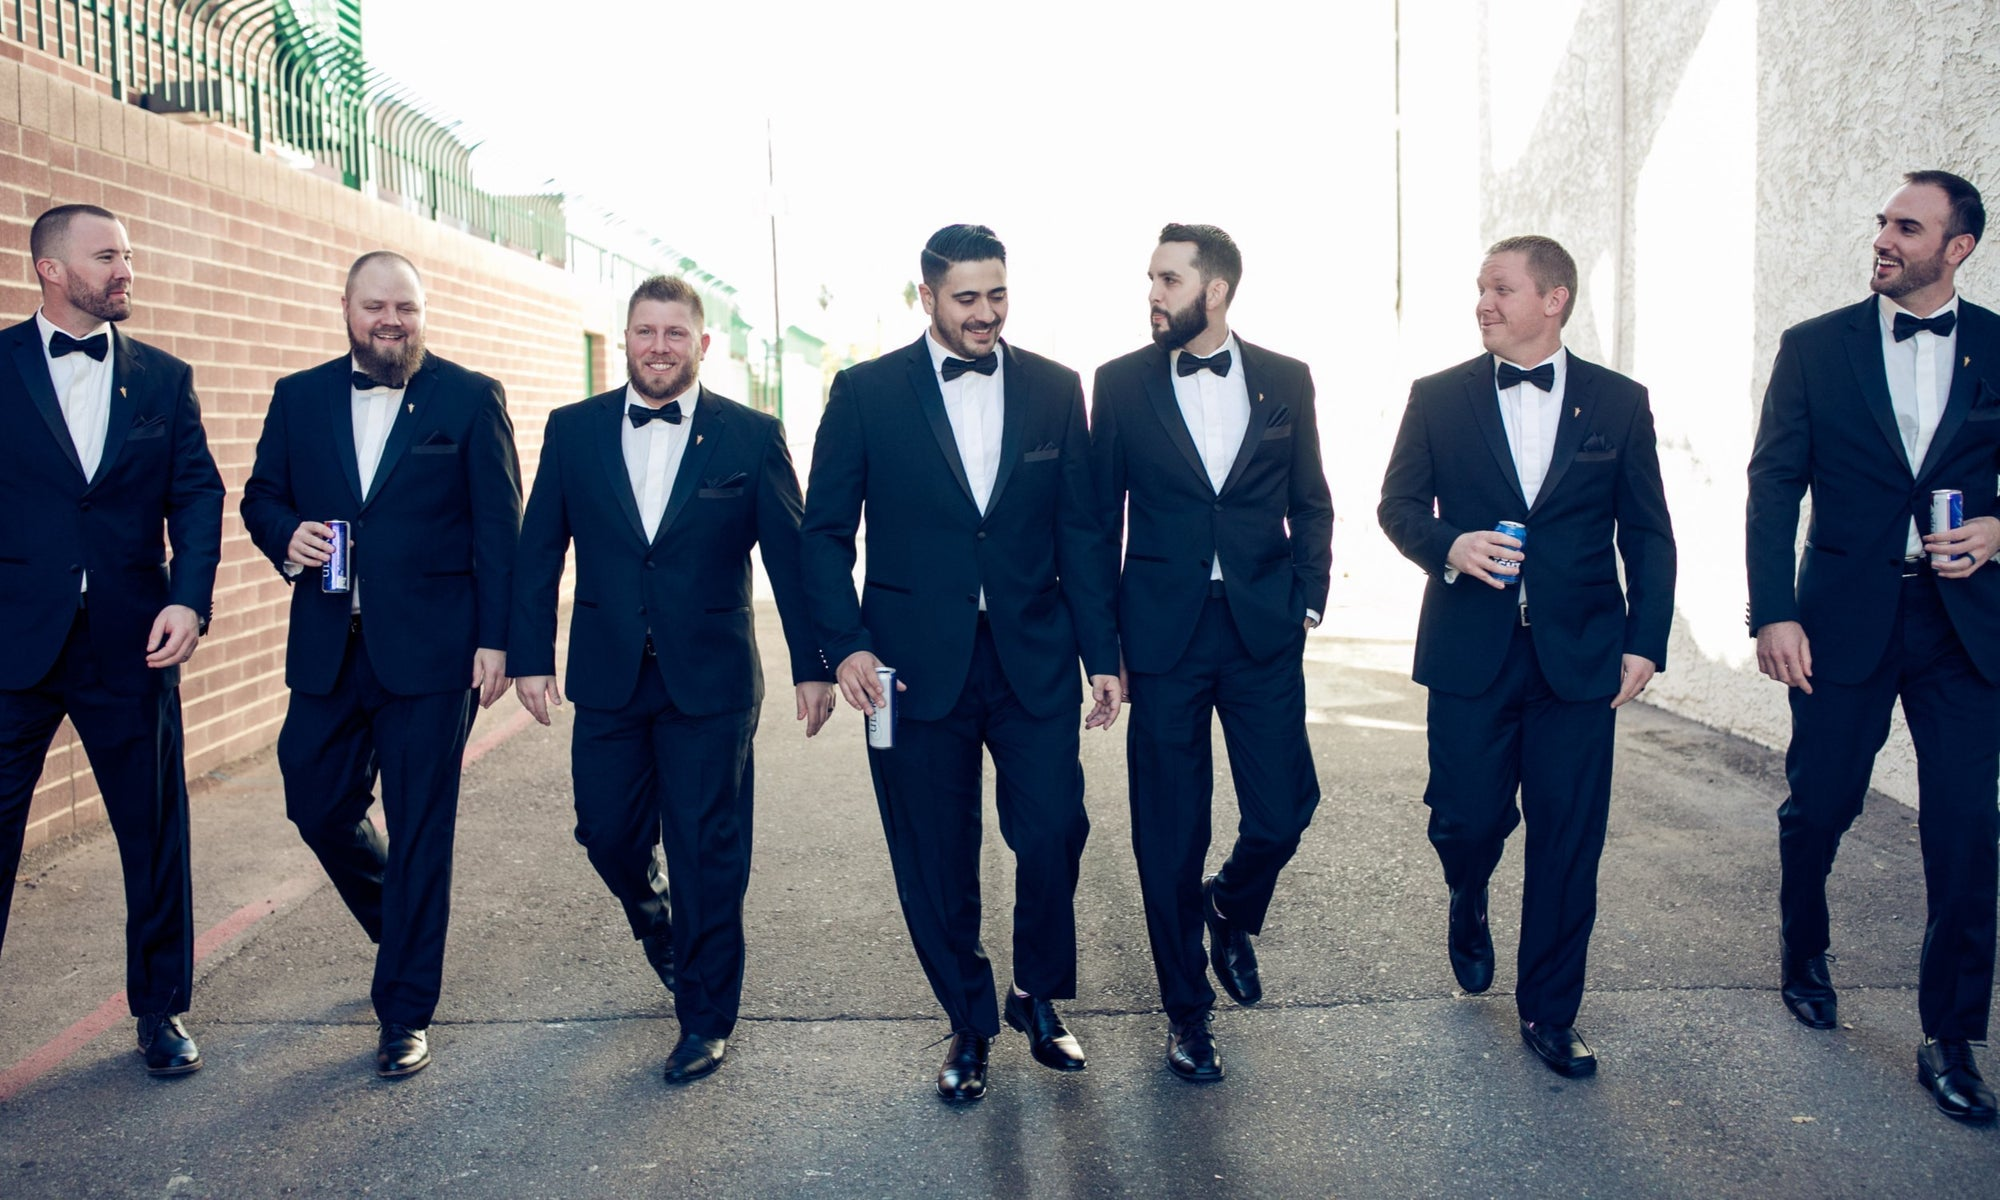 Show Off Your Style: Your Groom and Groomsmen Attire Guide